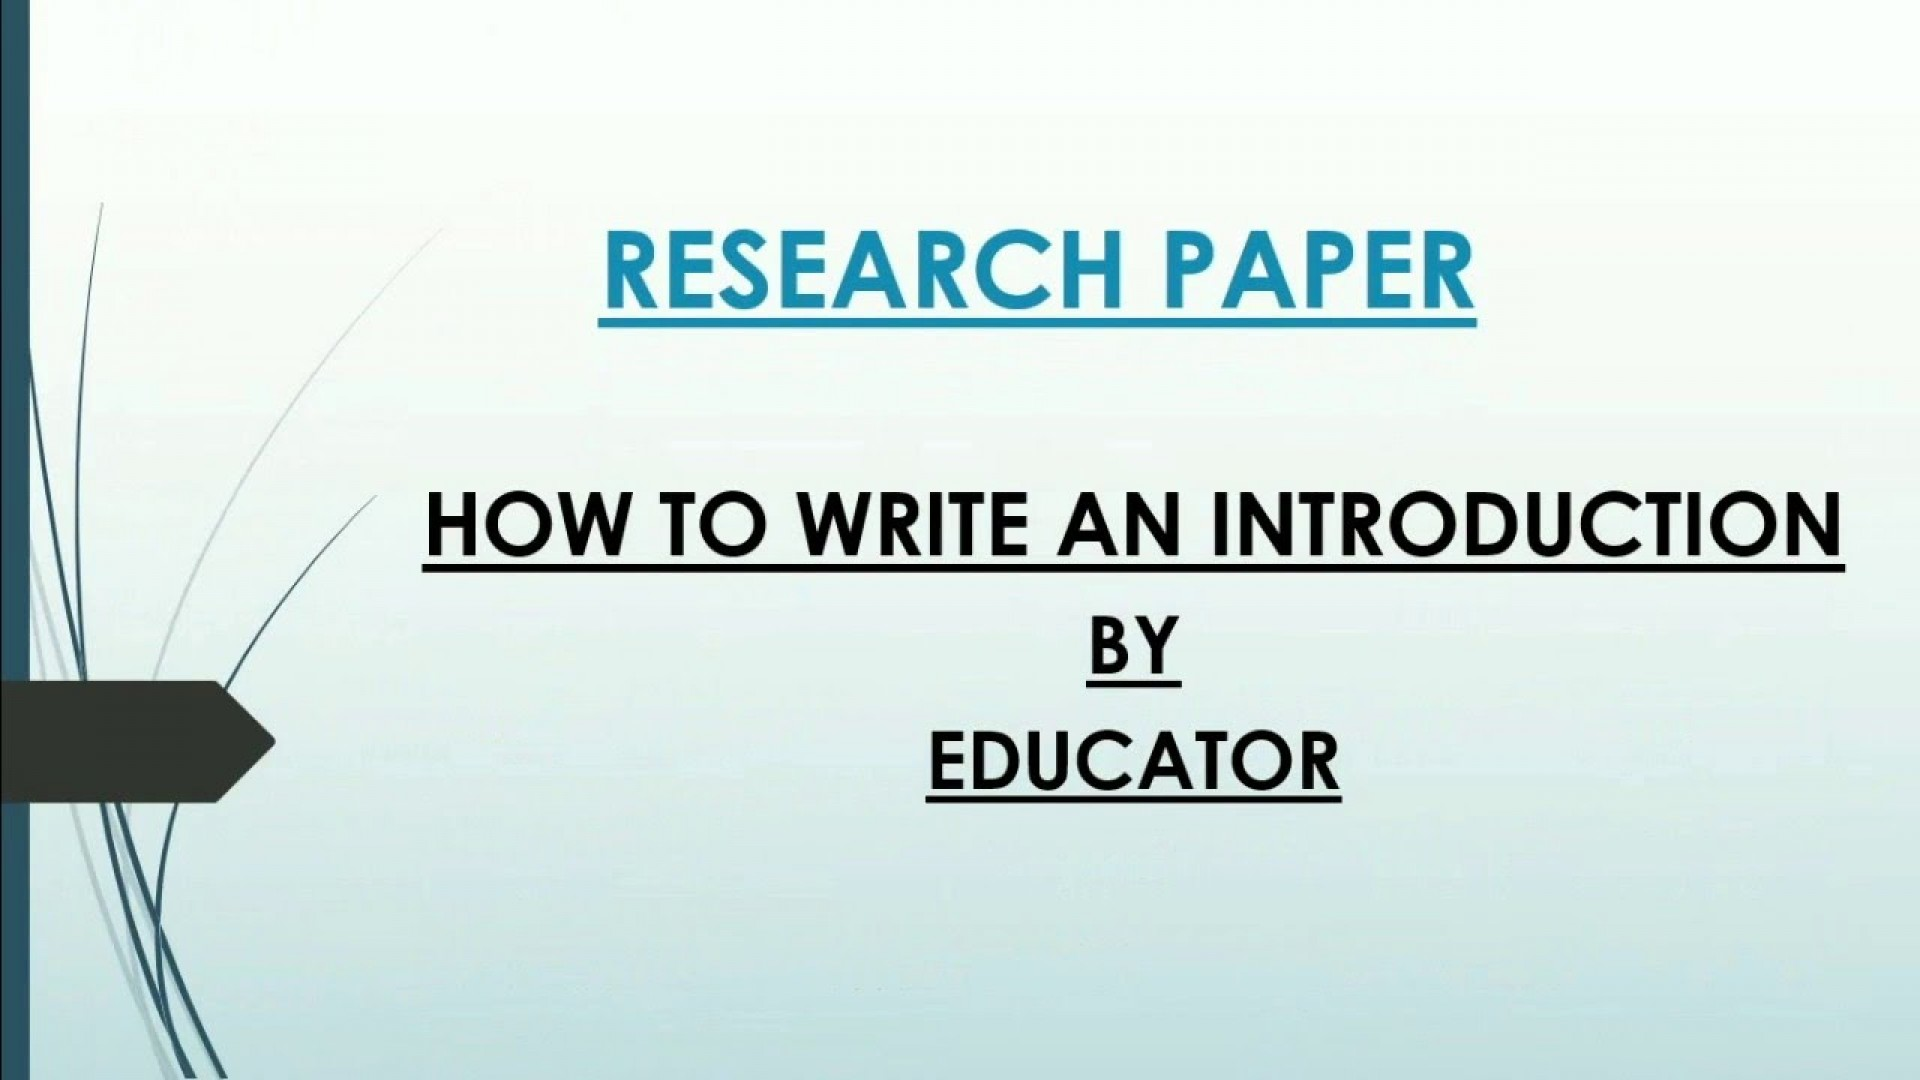 005 Maxresdefault Research Paper How To Write Good Introduction Phenomenal A For And Conclusion Thesis Statement Paragraph 1920